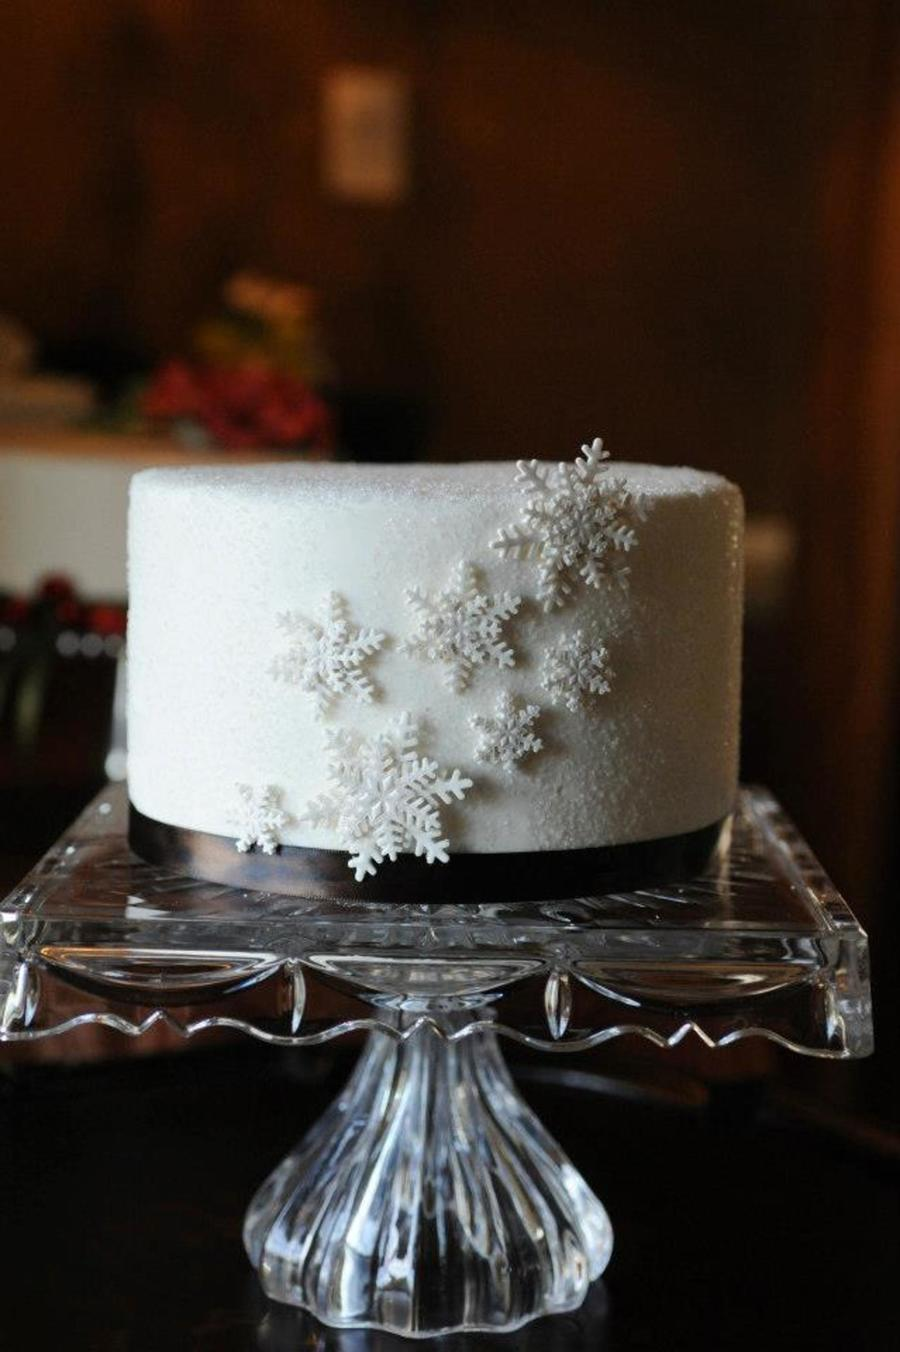 Gumpaste Snowflakes On Fondant Cake Covered In Sanding Sugar on Cake Central